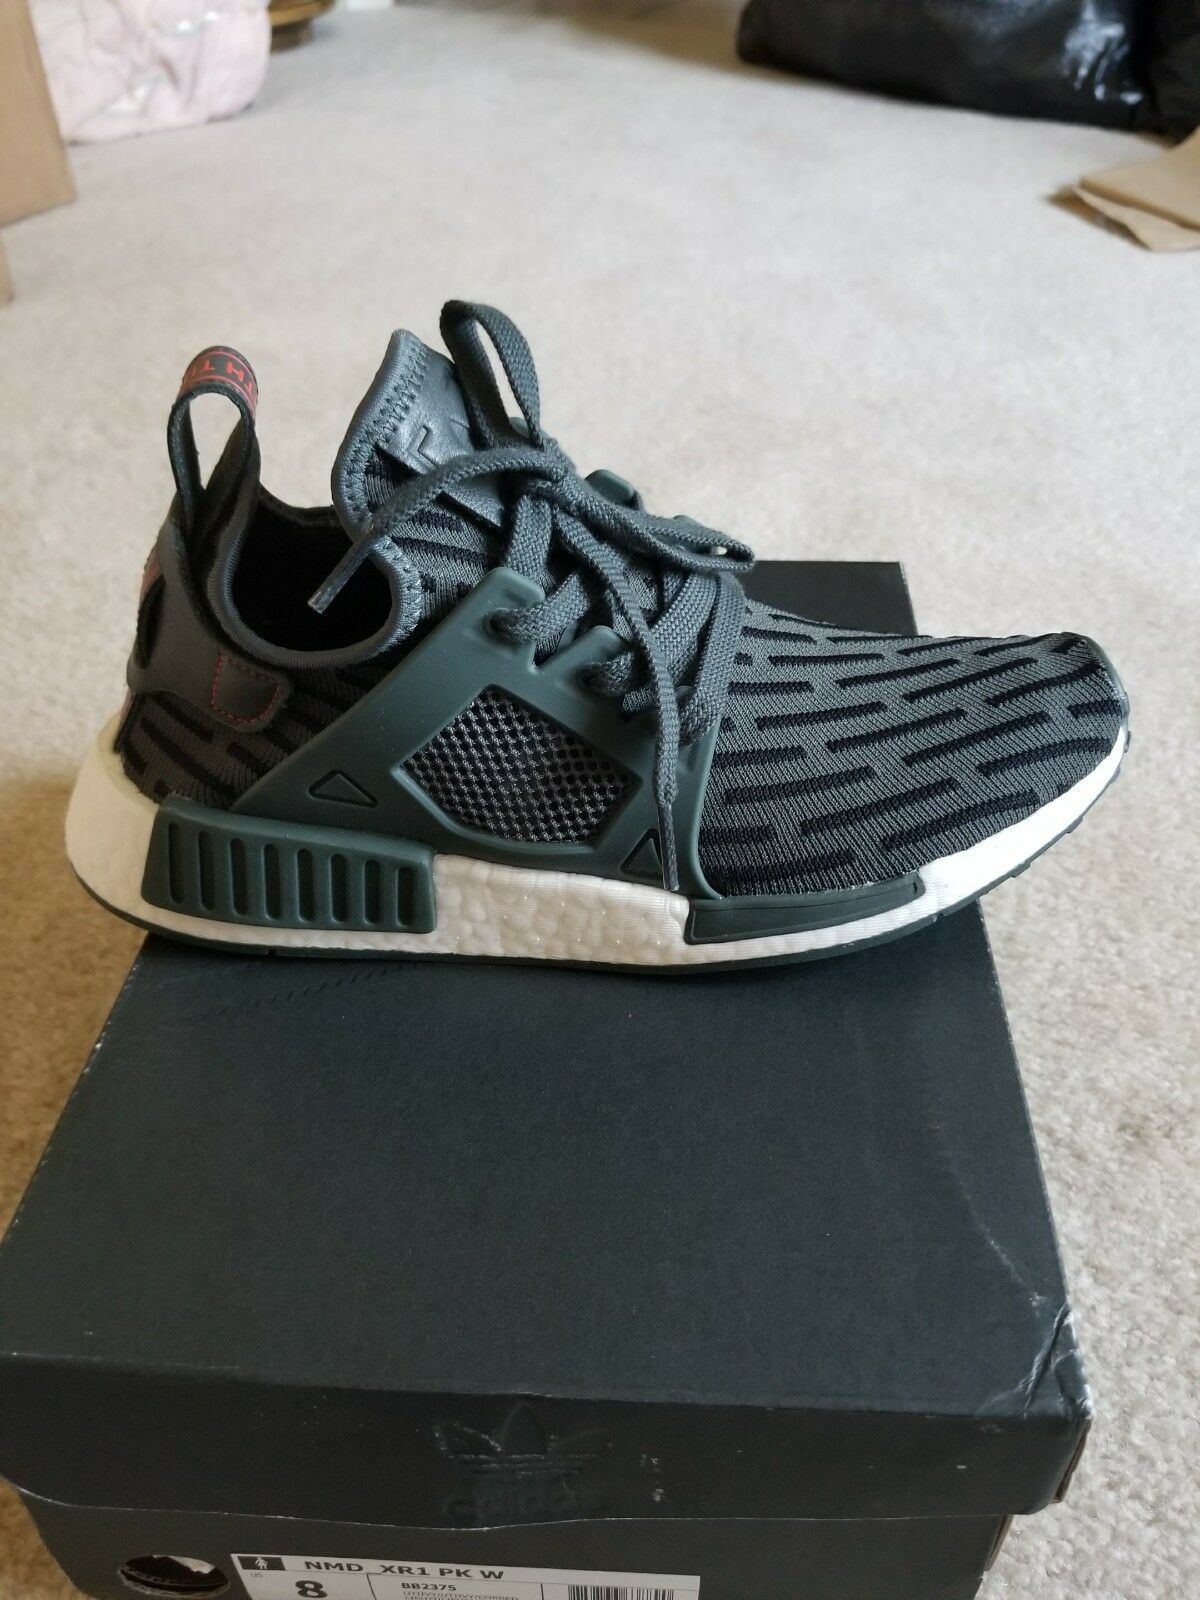 New Women's Adidas NMD XR1 Primeknit shoes 8.5 olive green run training casual